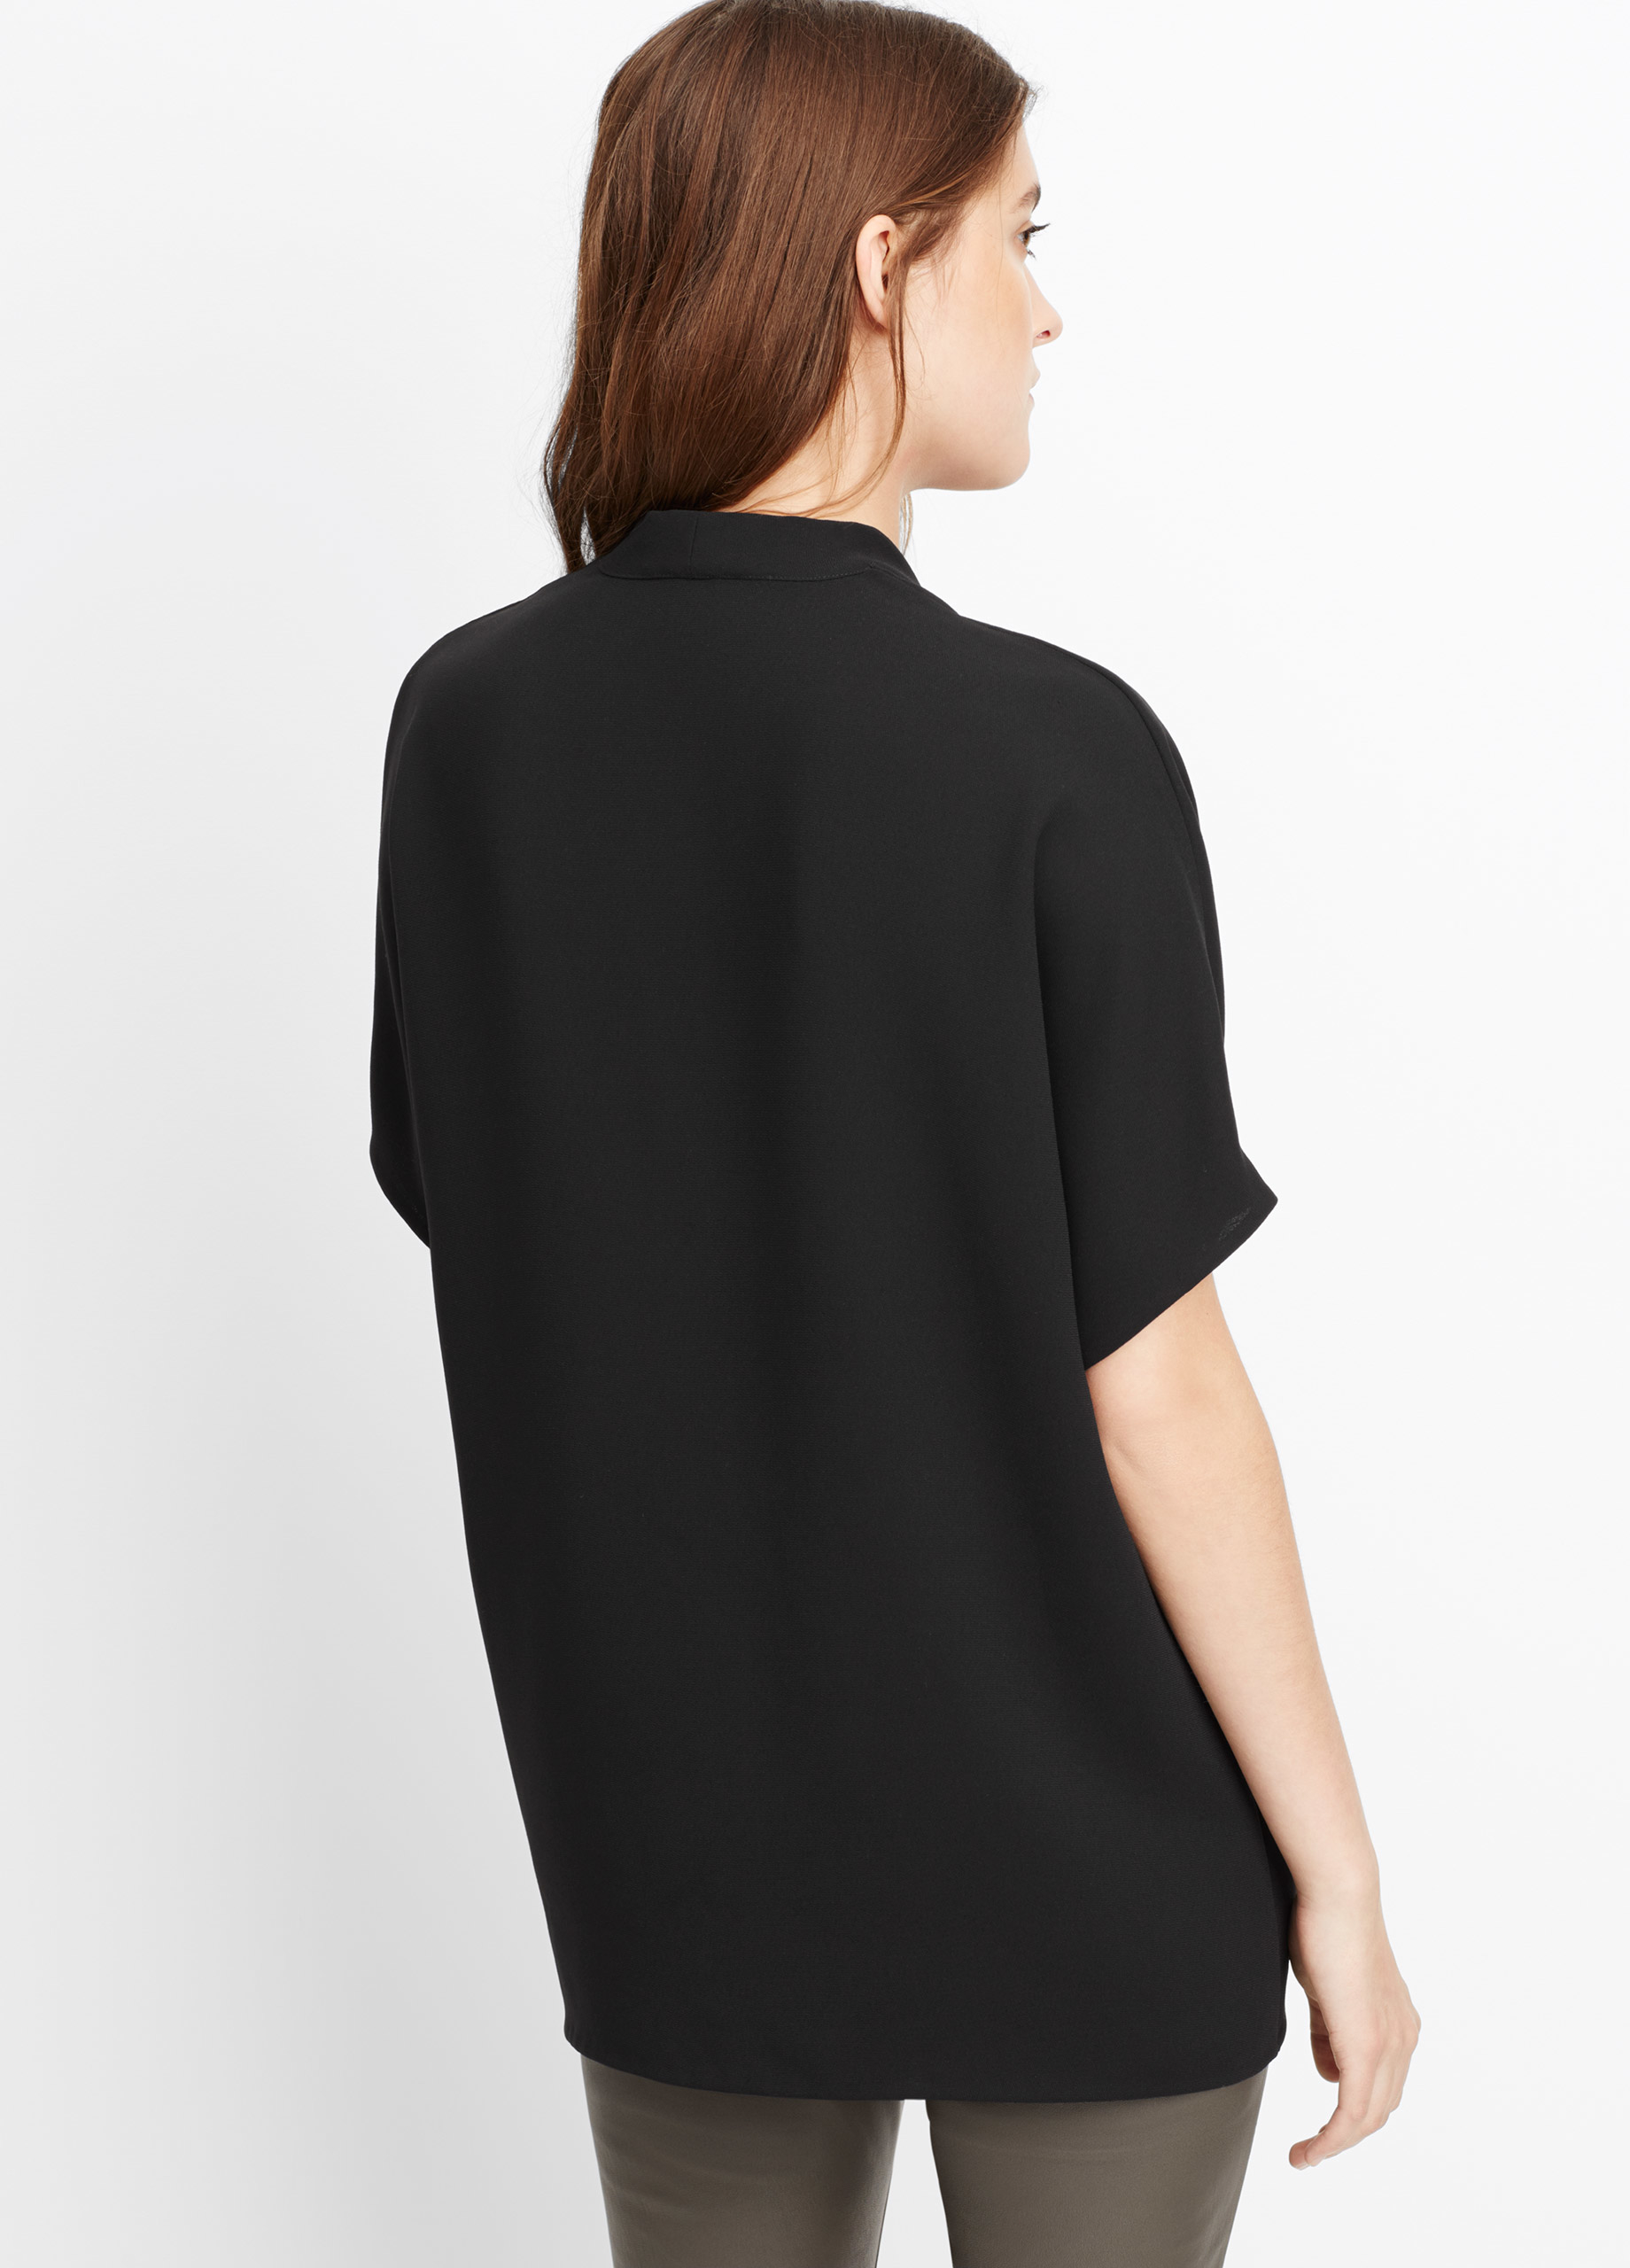 Shop Online at neyschelethel.ga for the Latest Womens Black Short Sleeve Shirts, Tunics, Blouses, Halter Tops & More Womens Tops. FREE SHIPPING AVAILABLE!